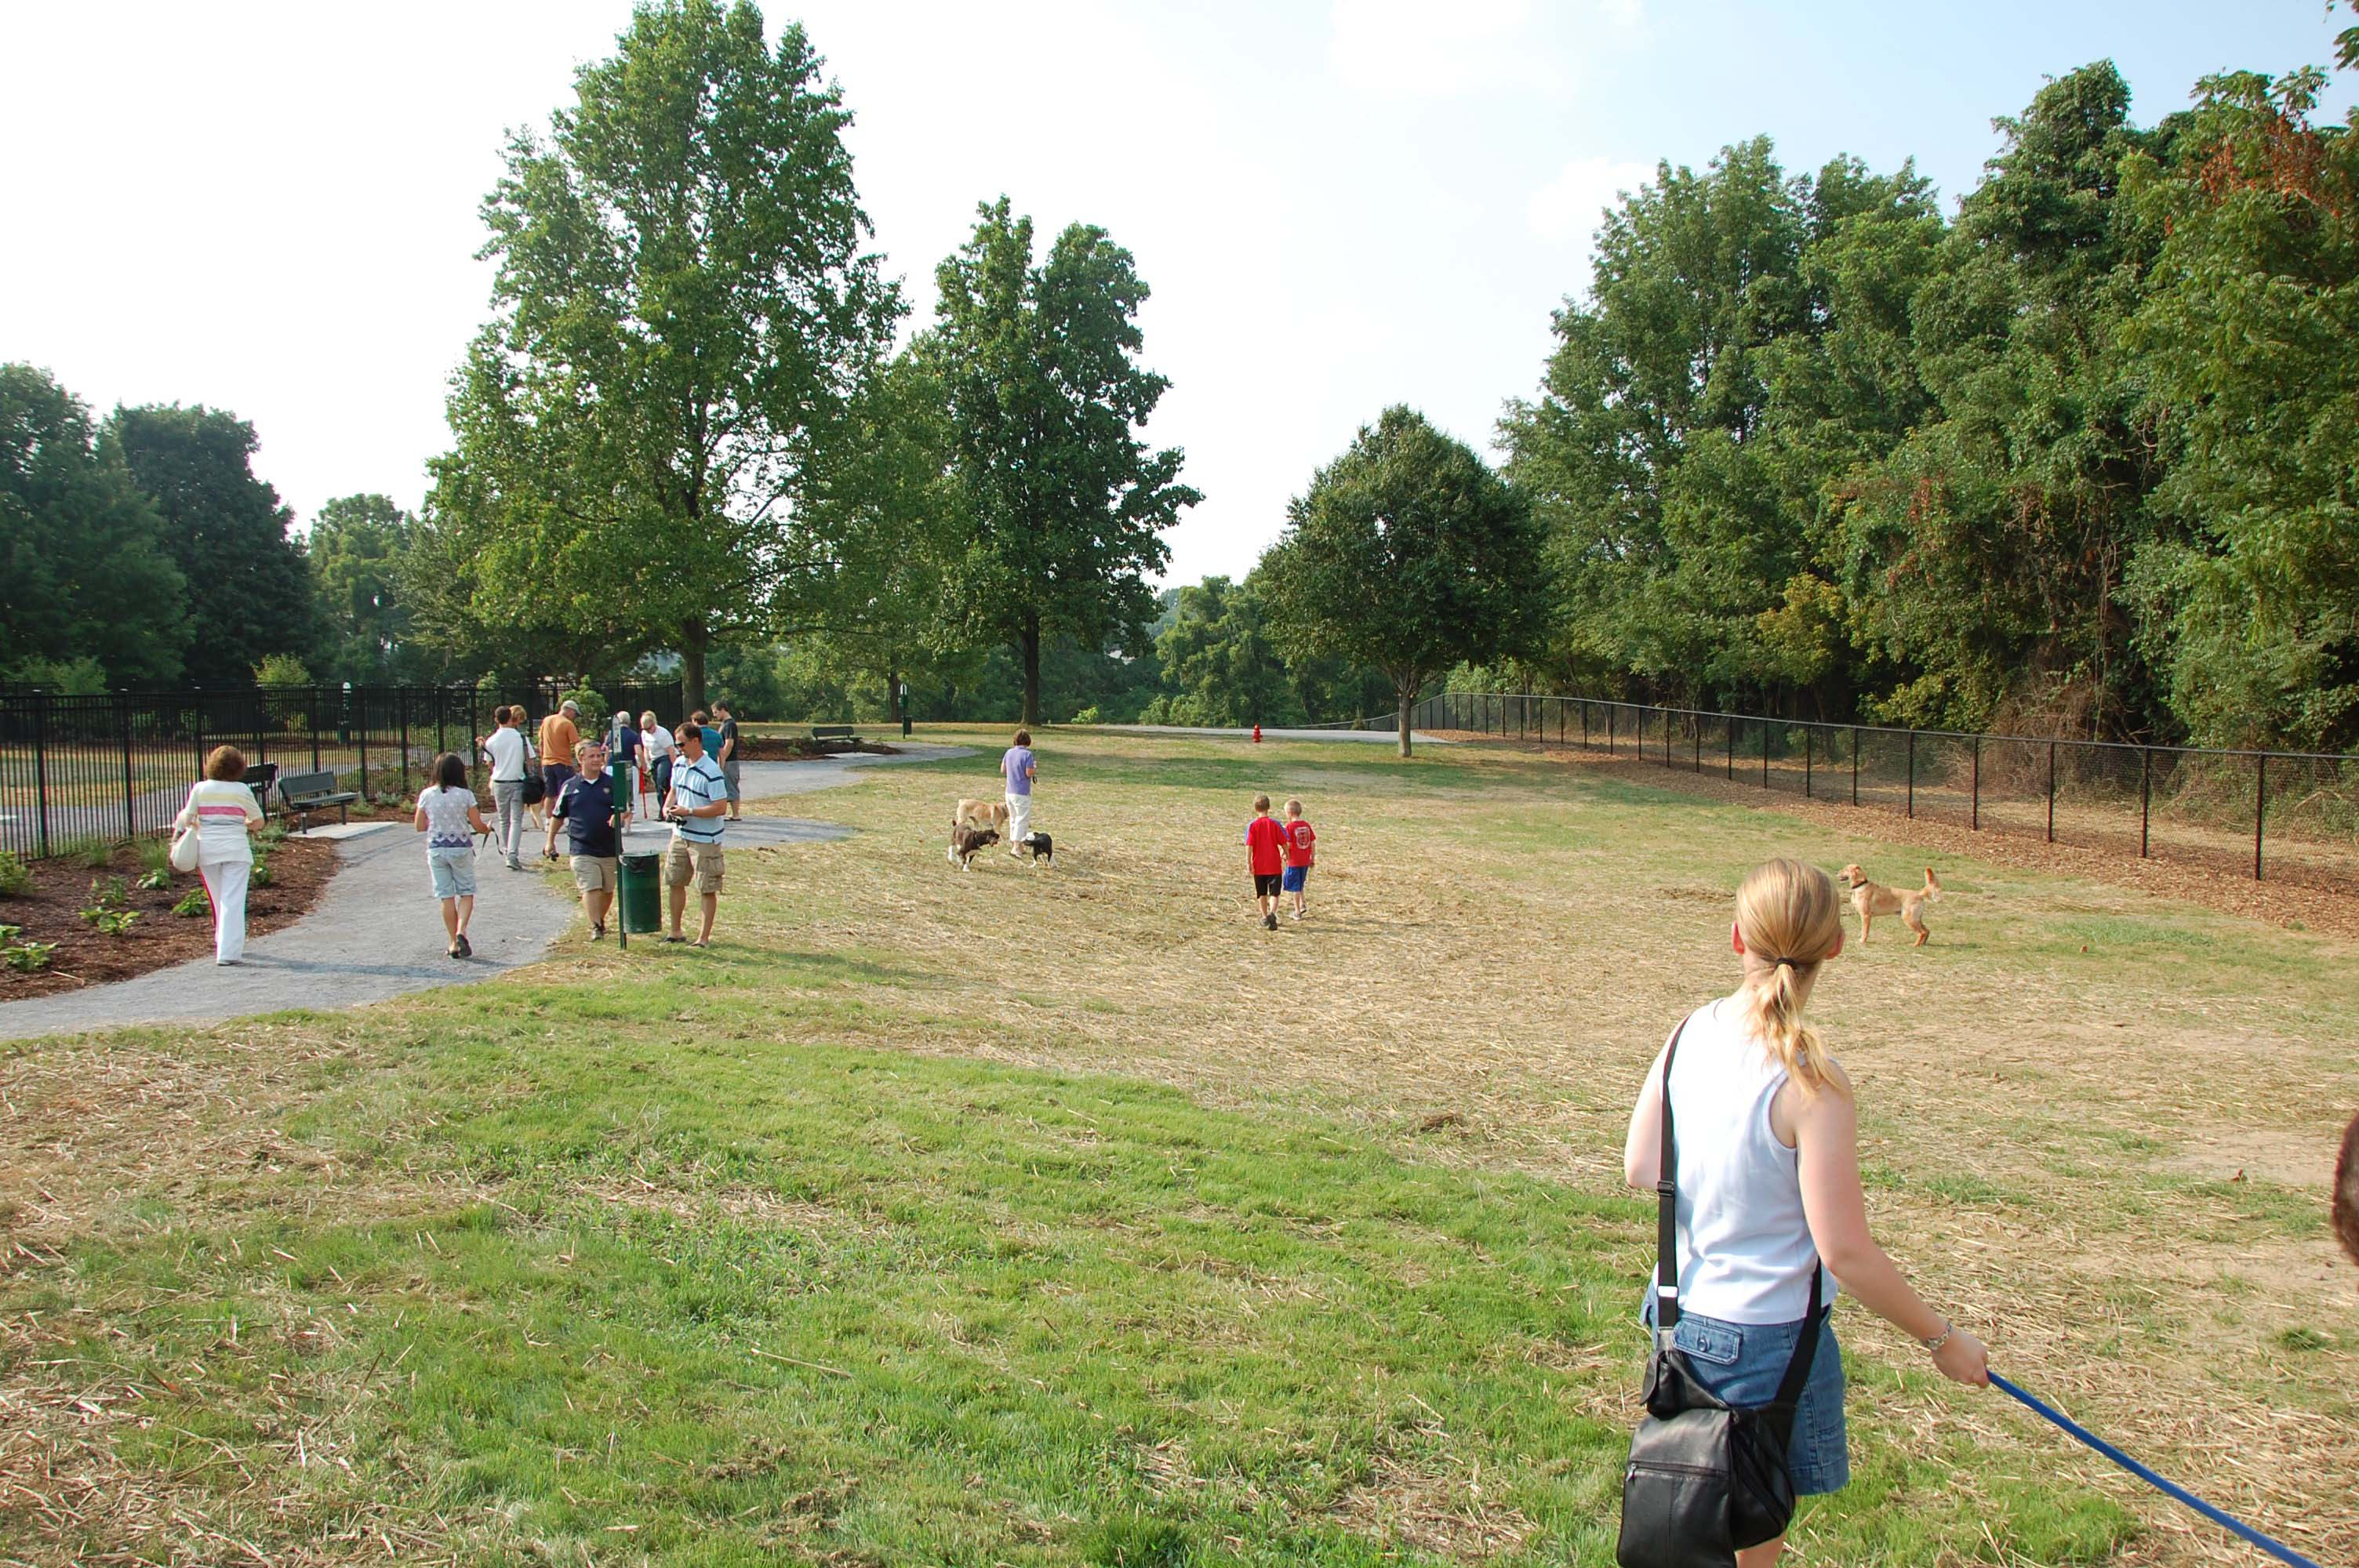 Bucks County Off-Leash Dog Park – Core Creek Park